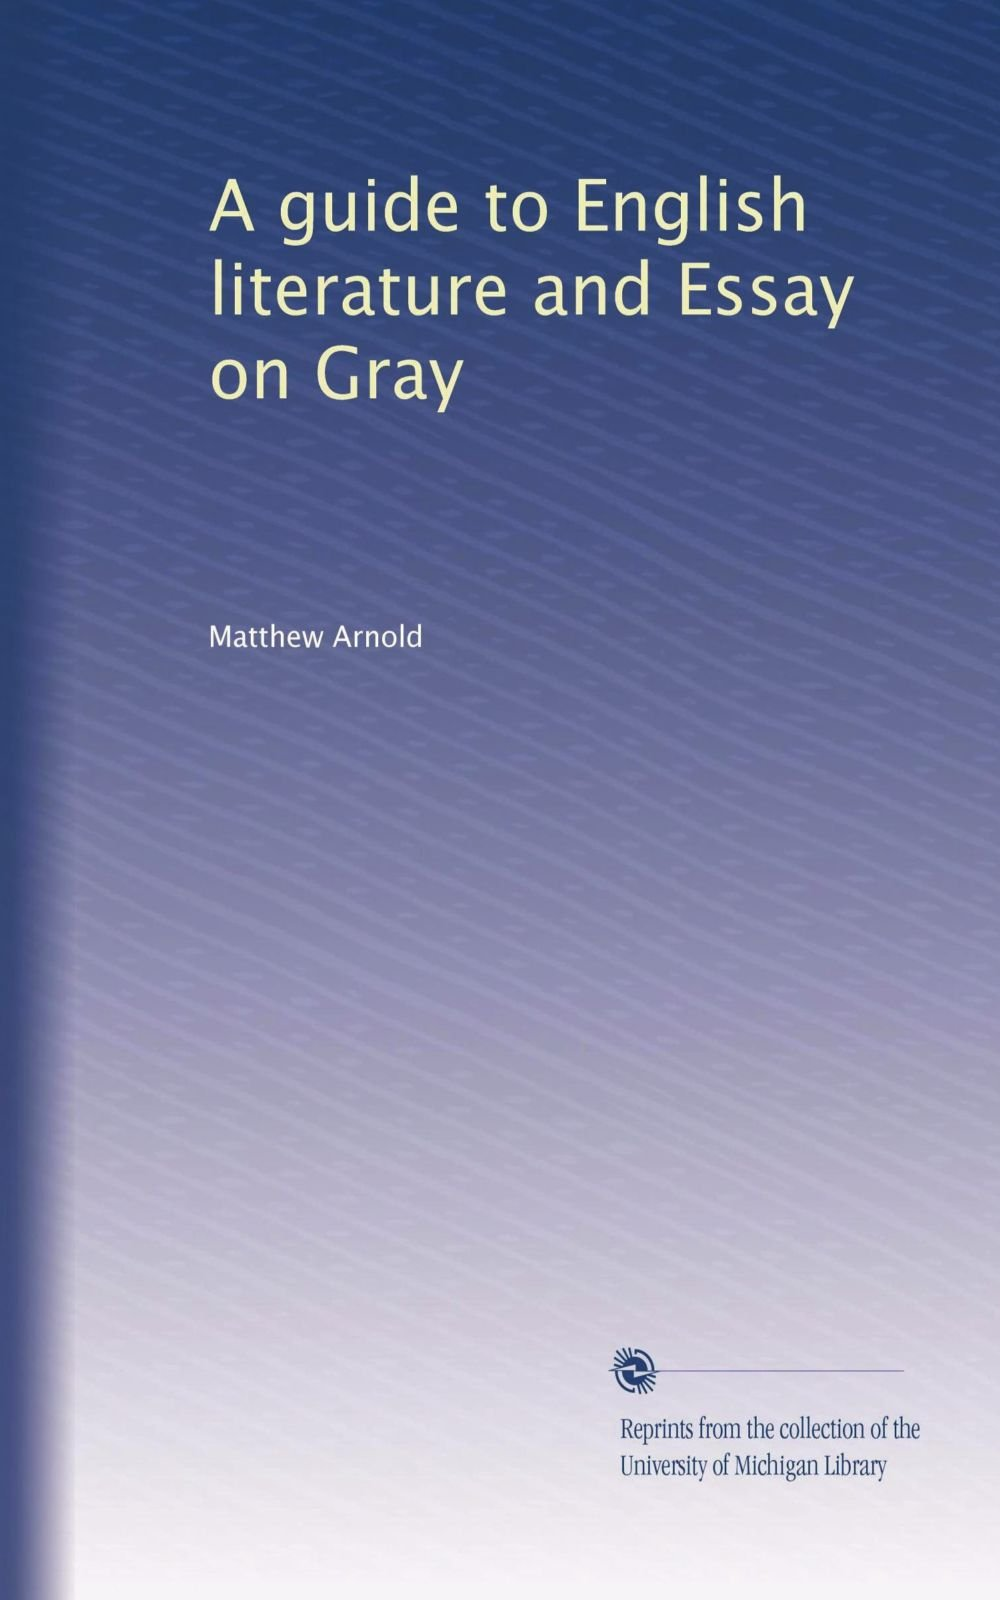 a guide to english literature and essay on gray matthew